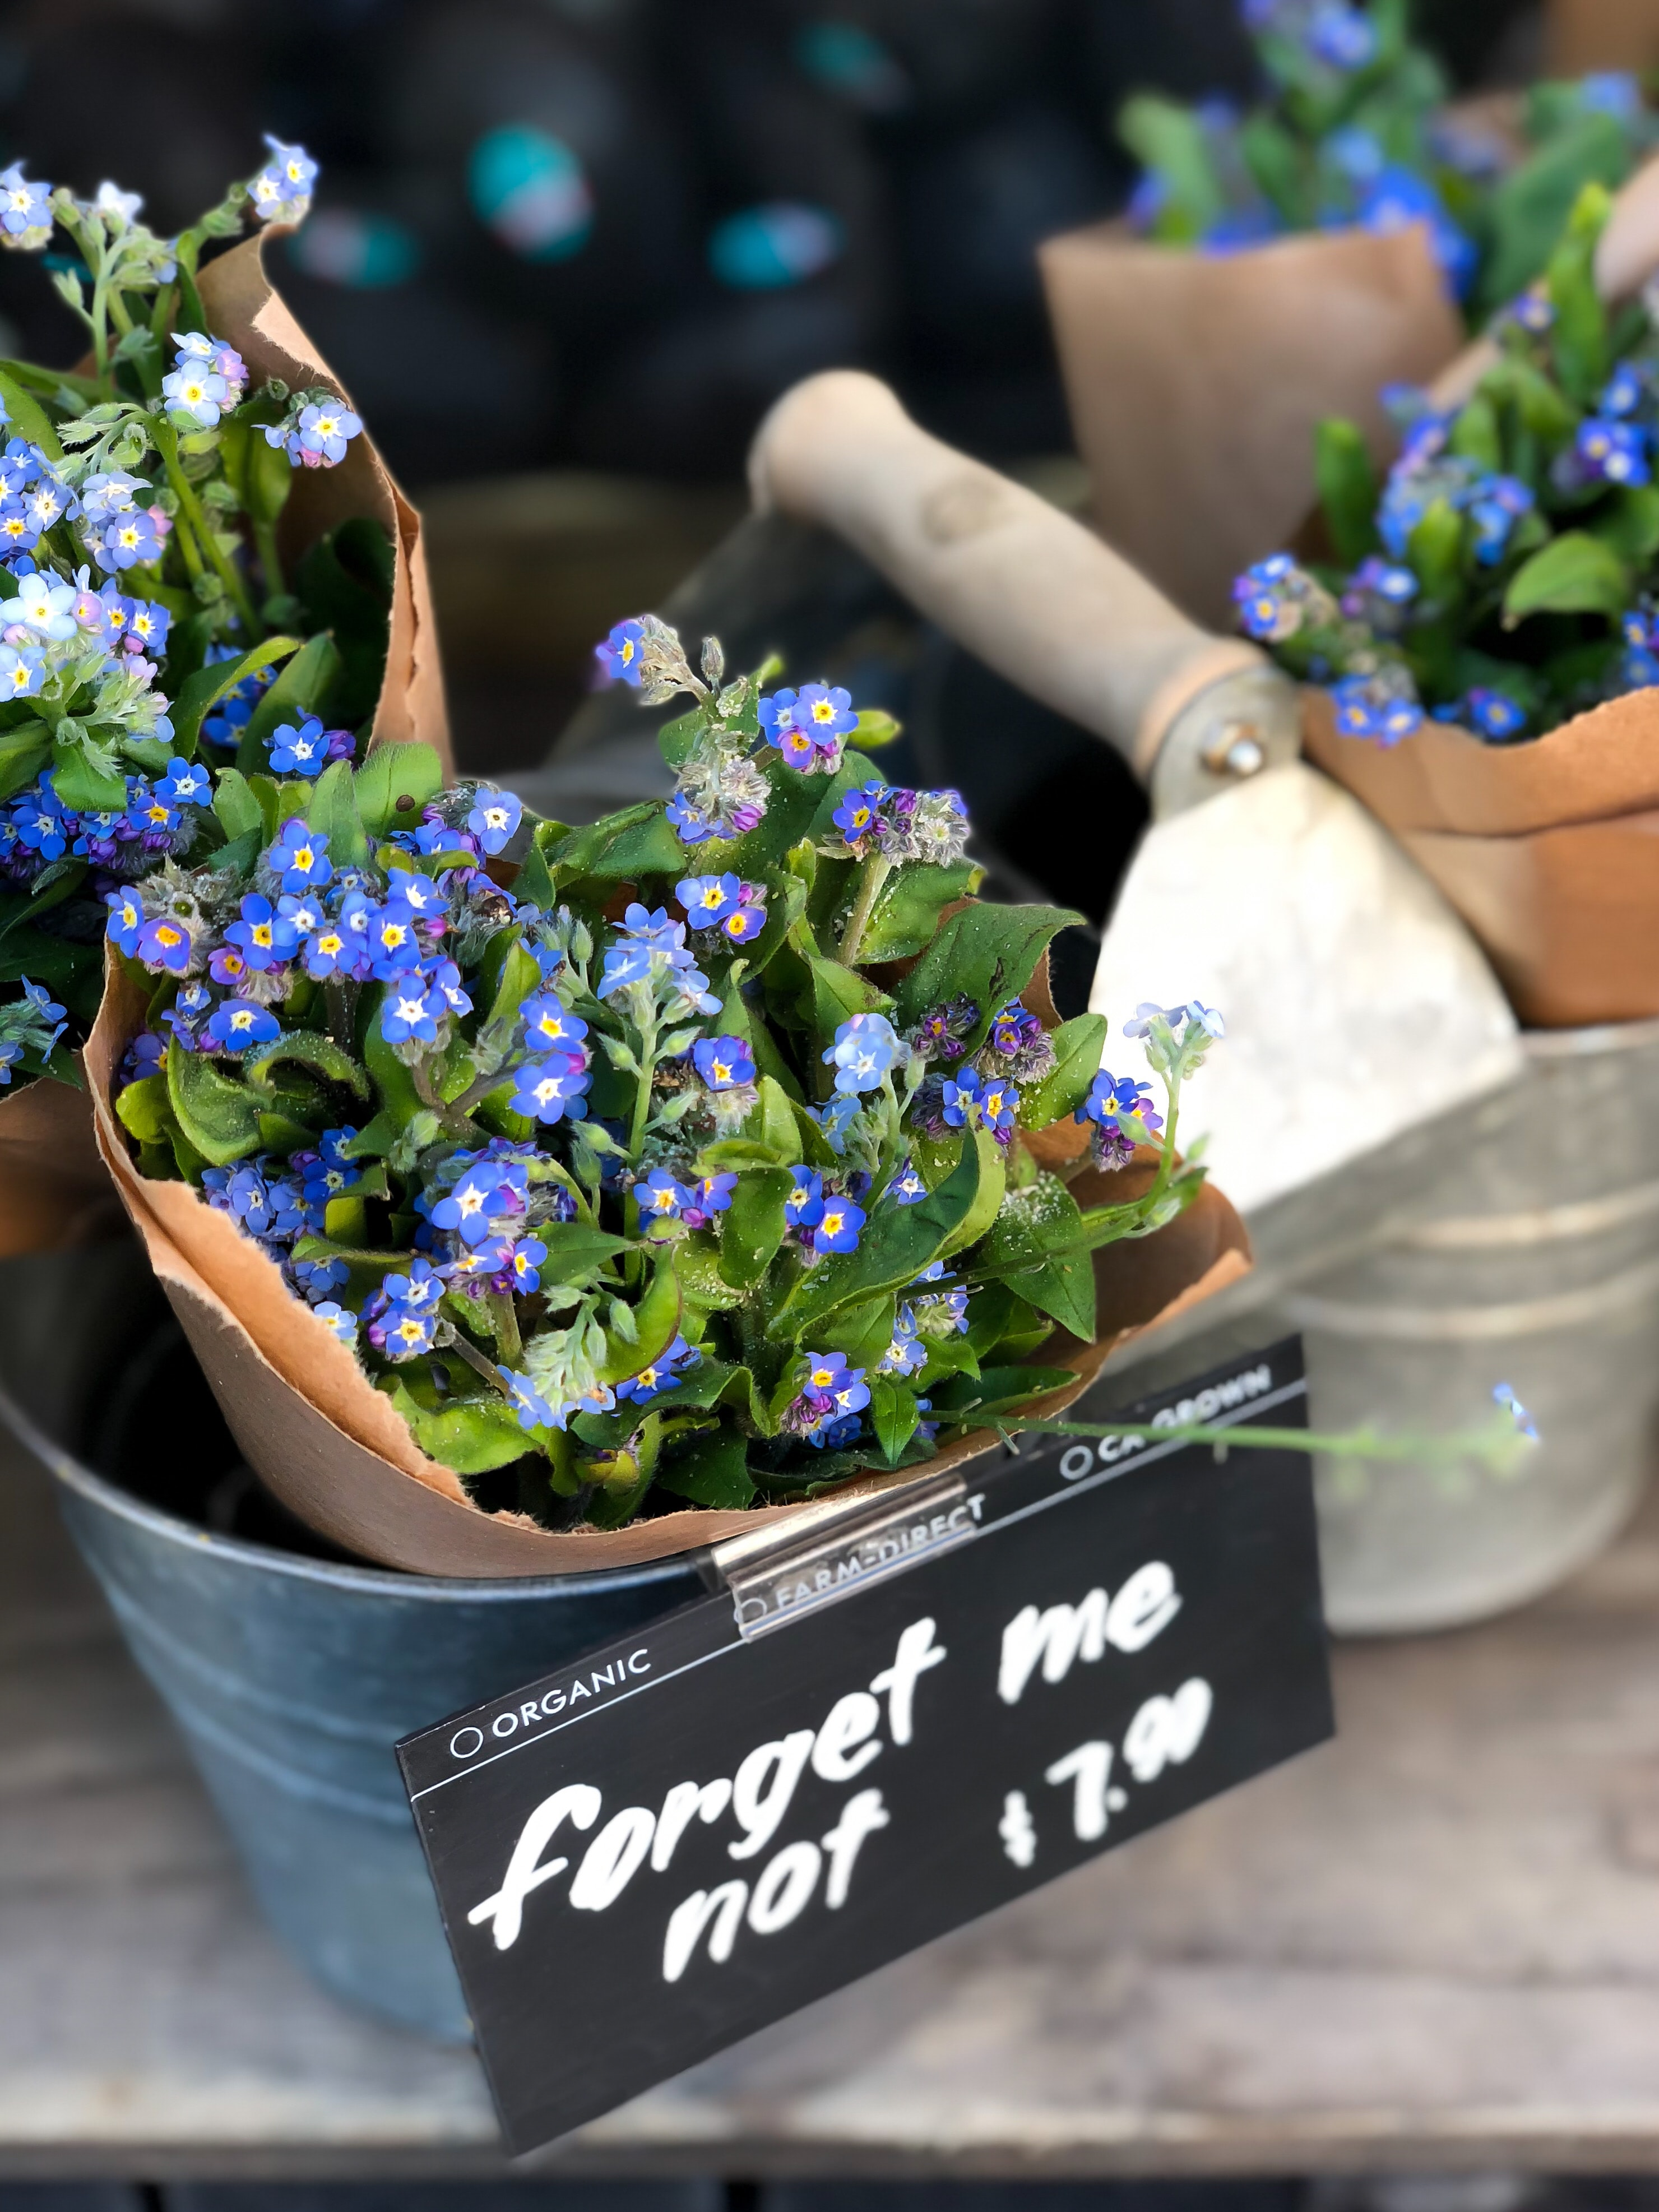 Forget-me-nots for fidelity